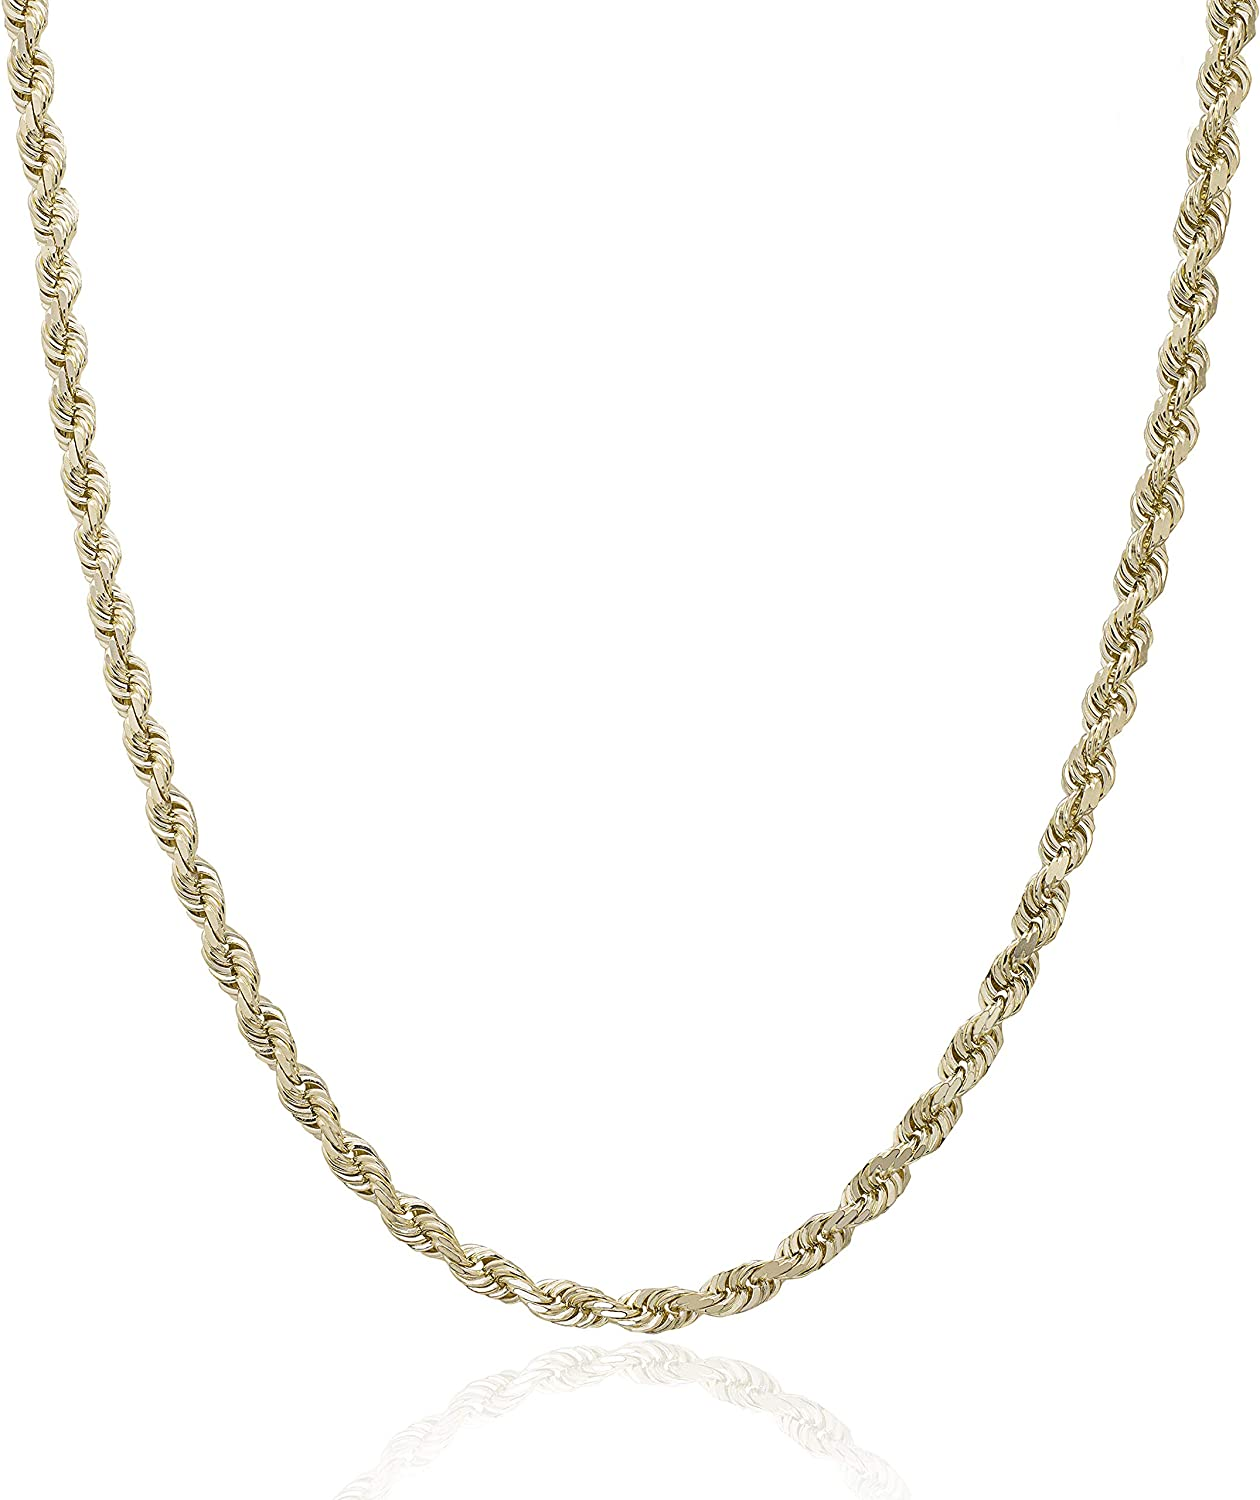 Honolulu Jewelry Company 14K OFFicial site Solid Yellow Rope Long Beach Mall 3mm Gold Chain Ne